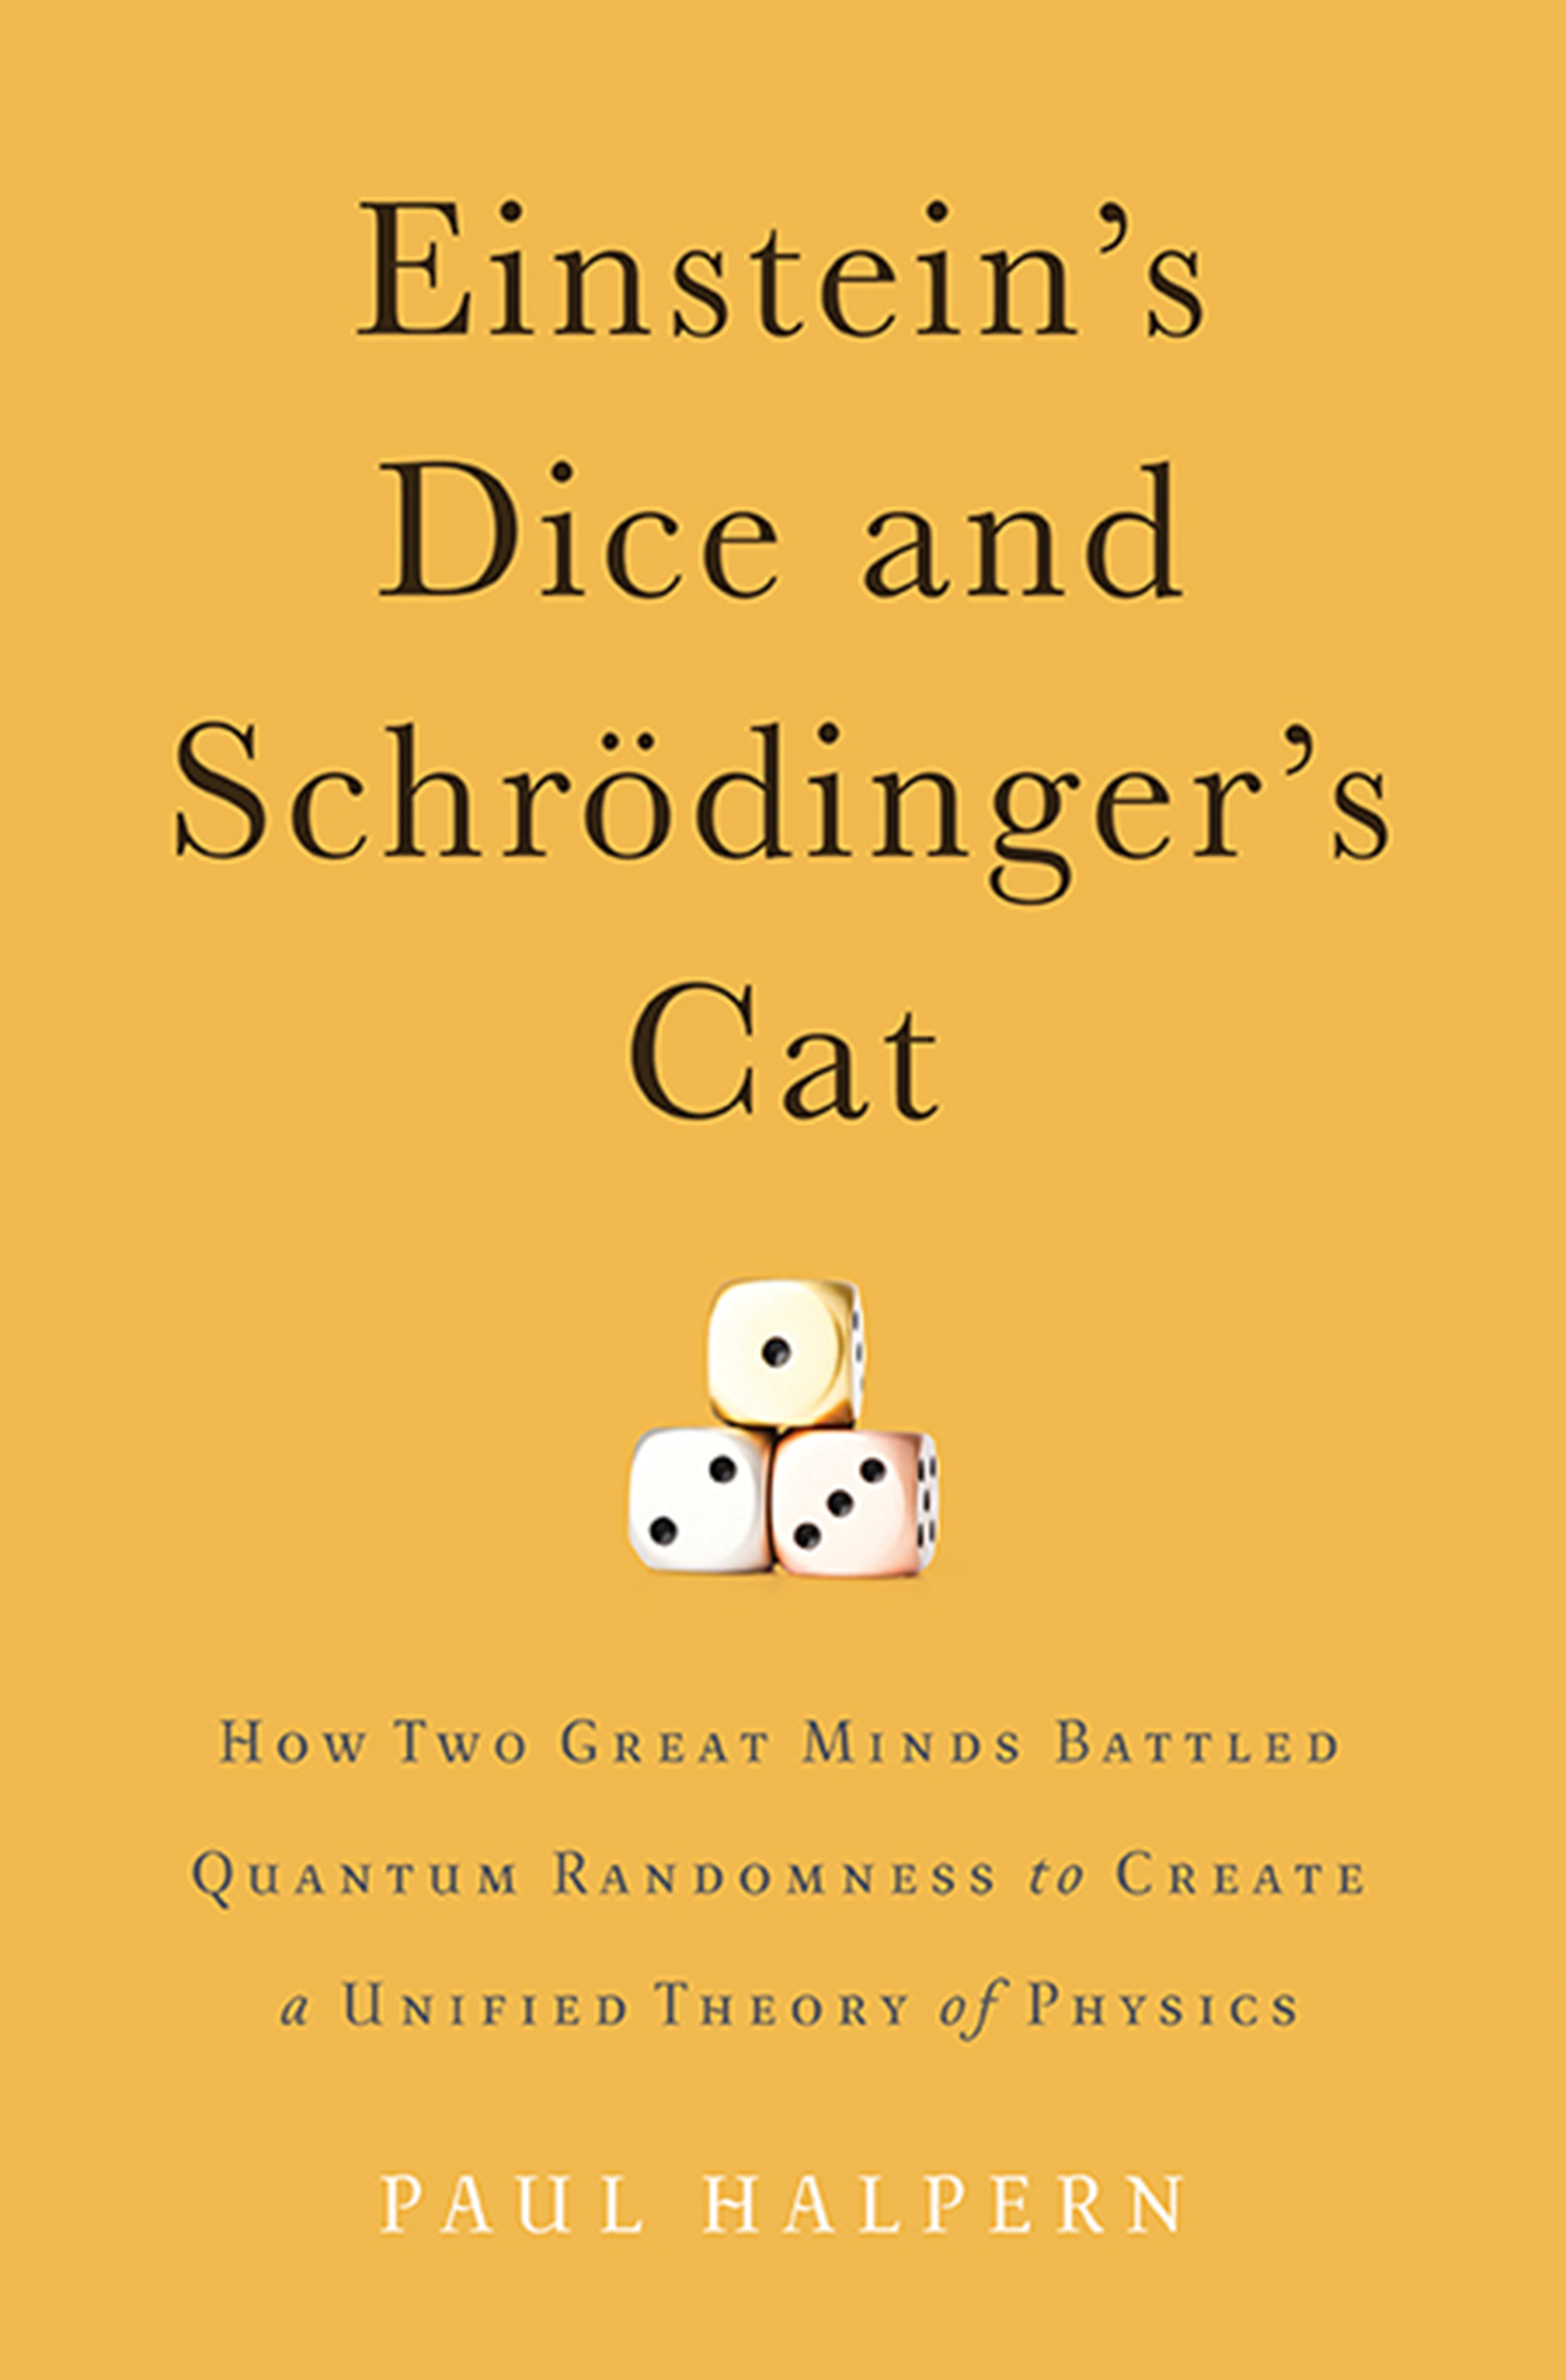 Einstein's Dice and Schrödinger's Cat How Two Great Minds Battled Quantum Randomness to Create a Unified Theory of Physics